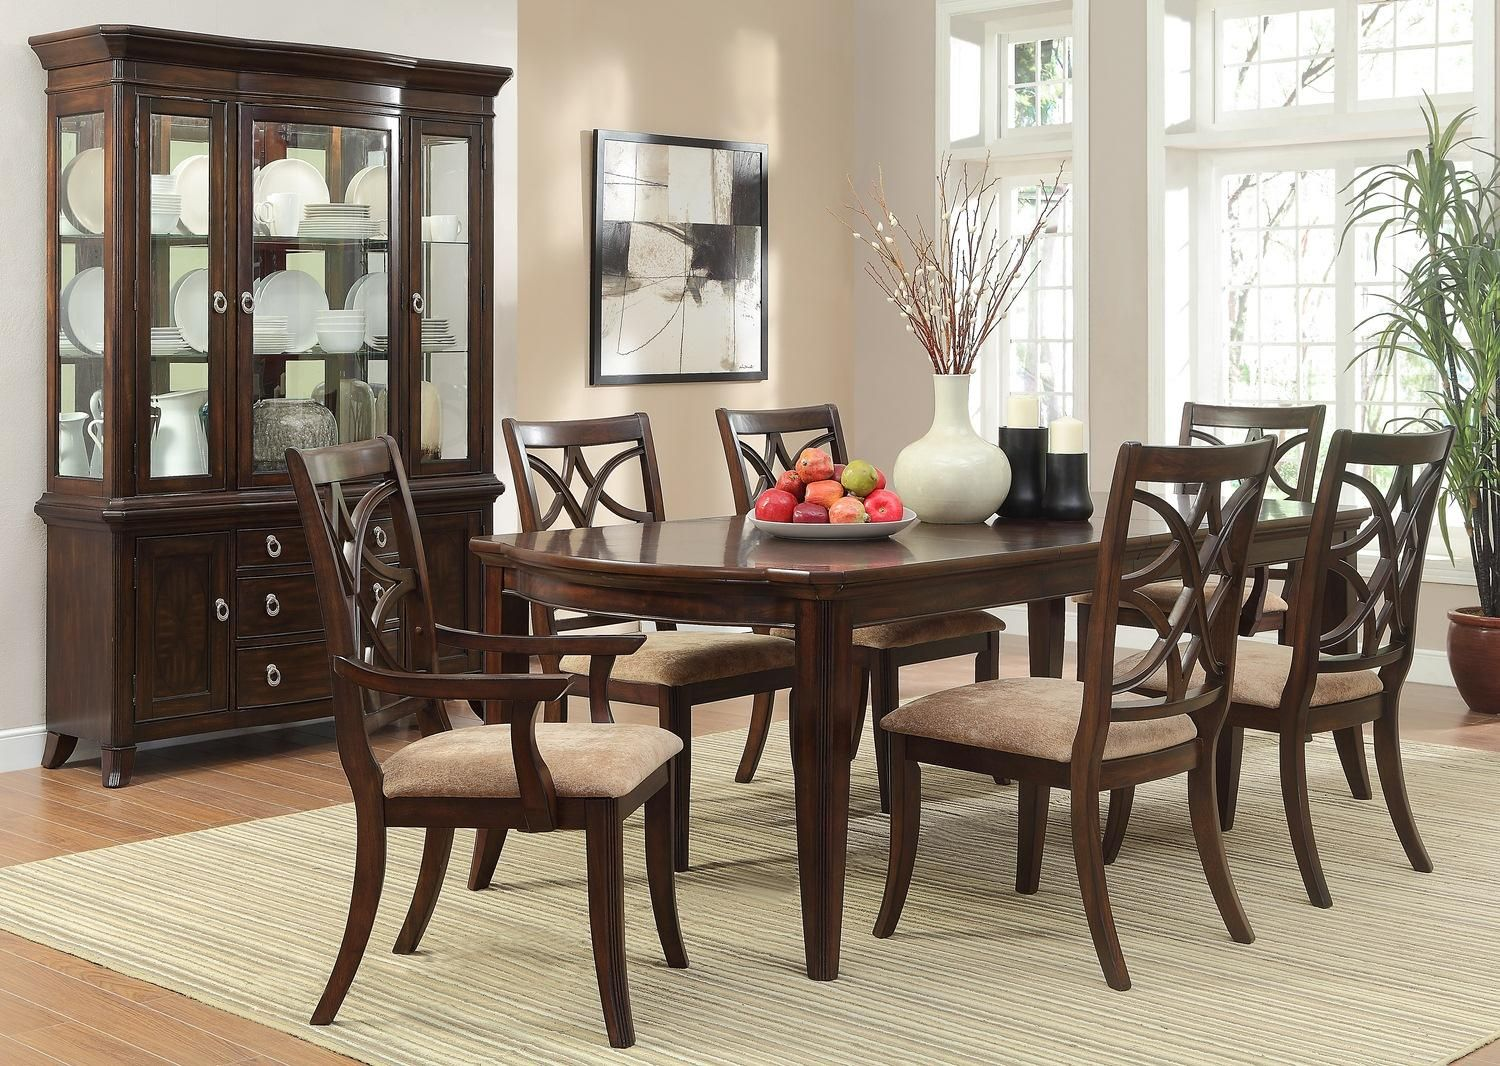 Homelegance Keegan 7 Piece Dining Set Va Md & Dc $950 Marlo Alluring Dining Room Set With Hutch Design Ideas